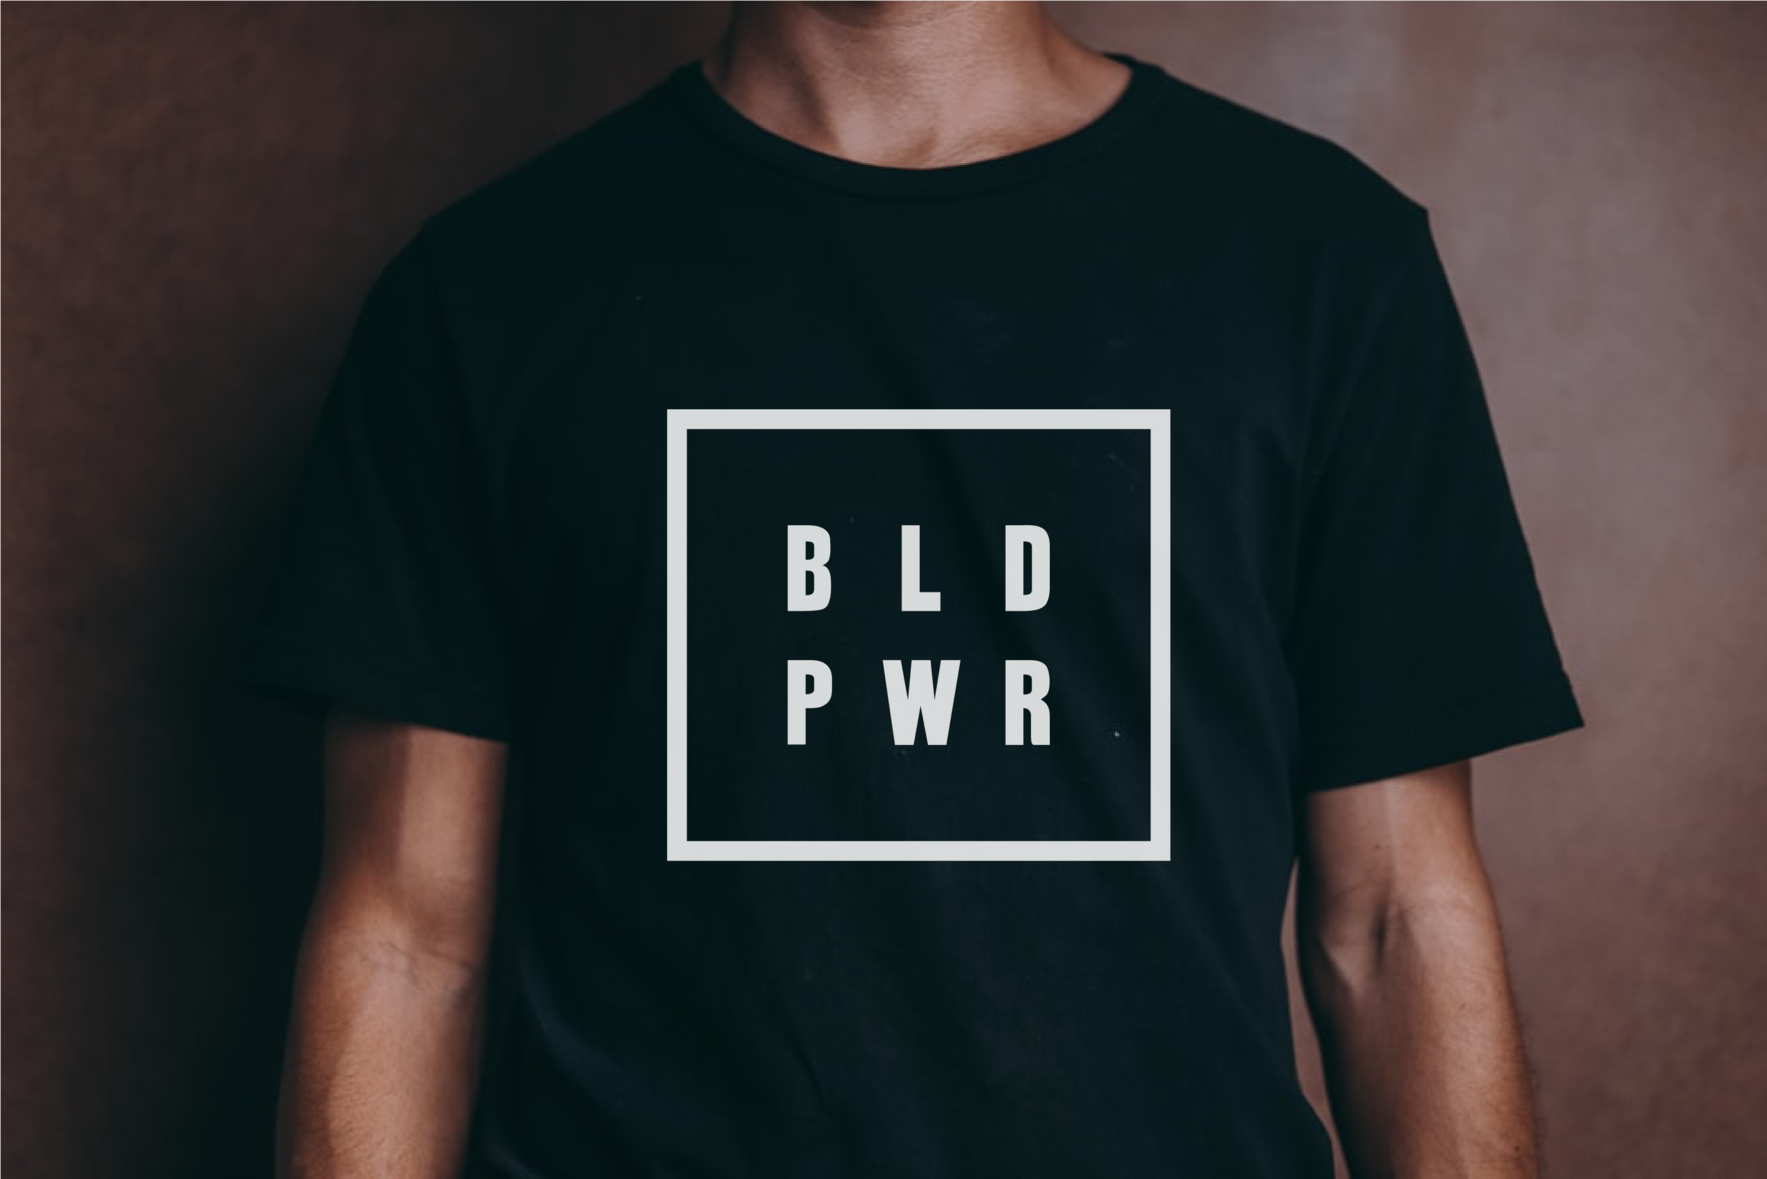 // DONATE TO BLD PWR \\ image